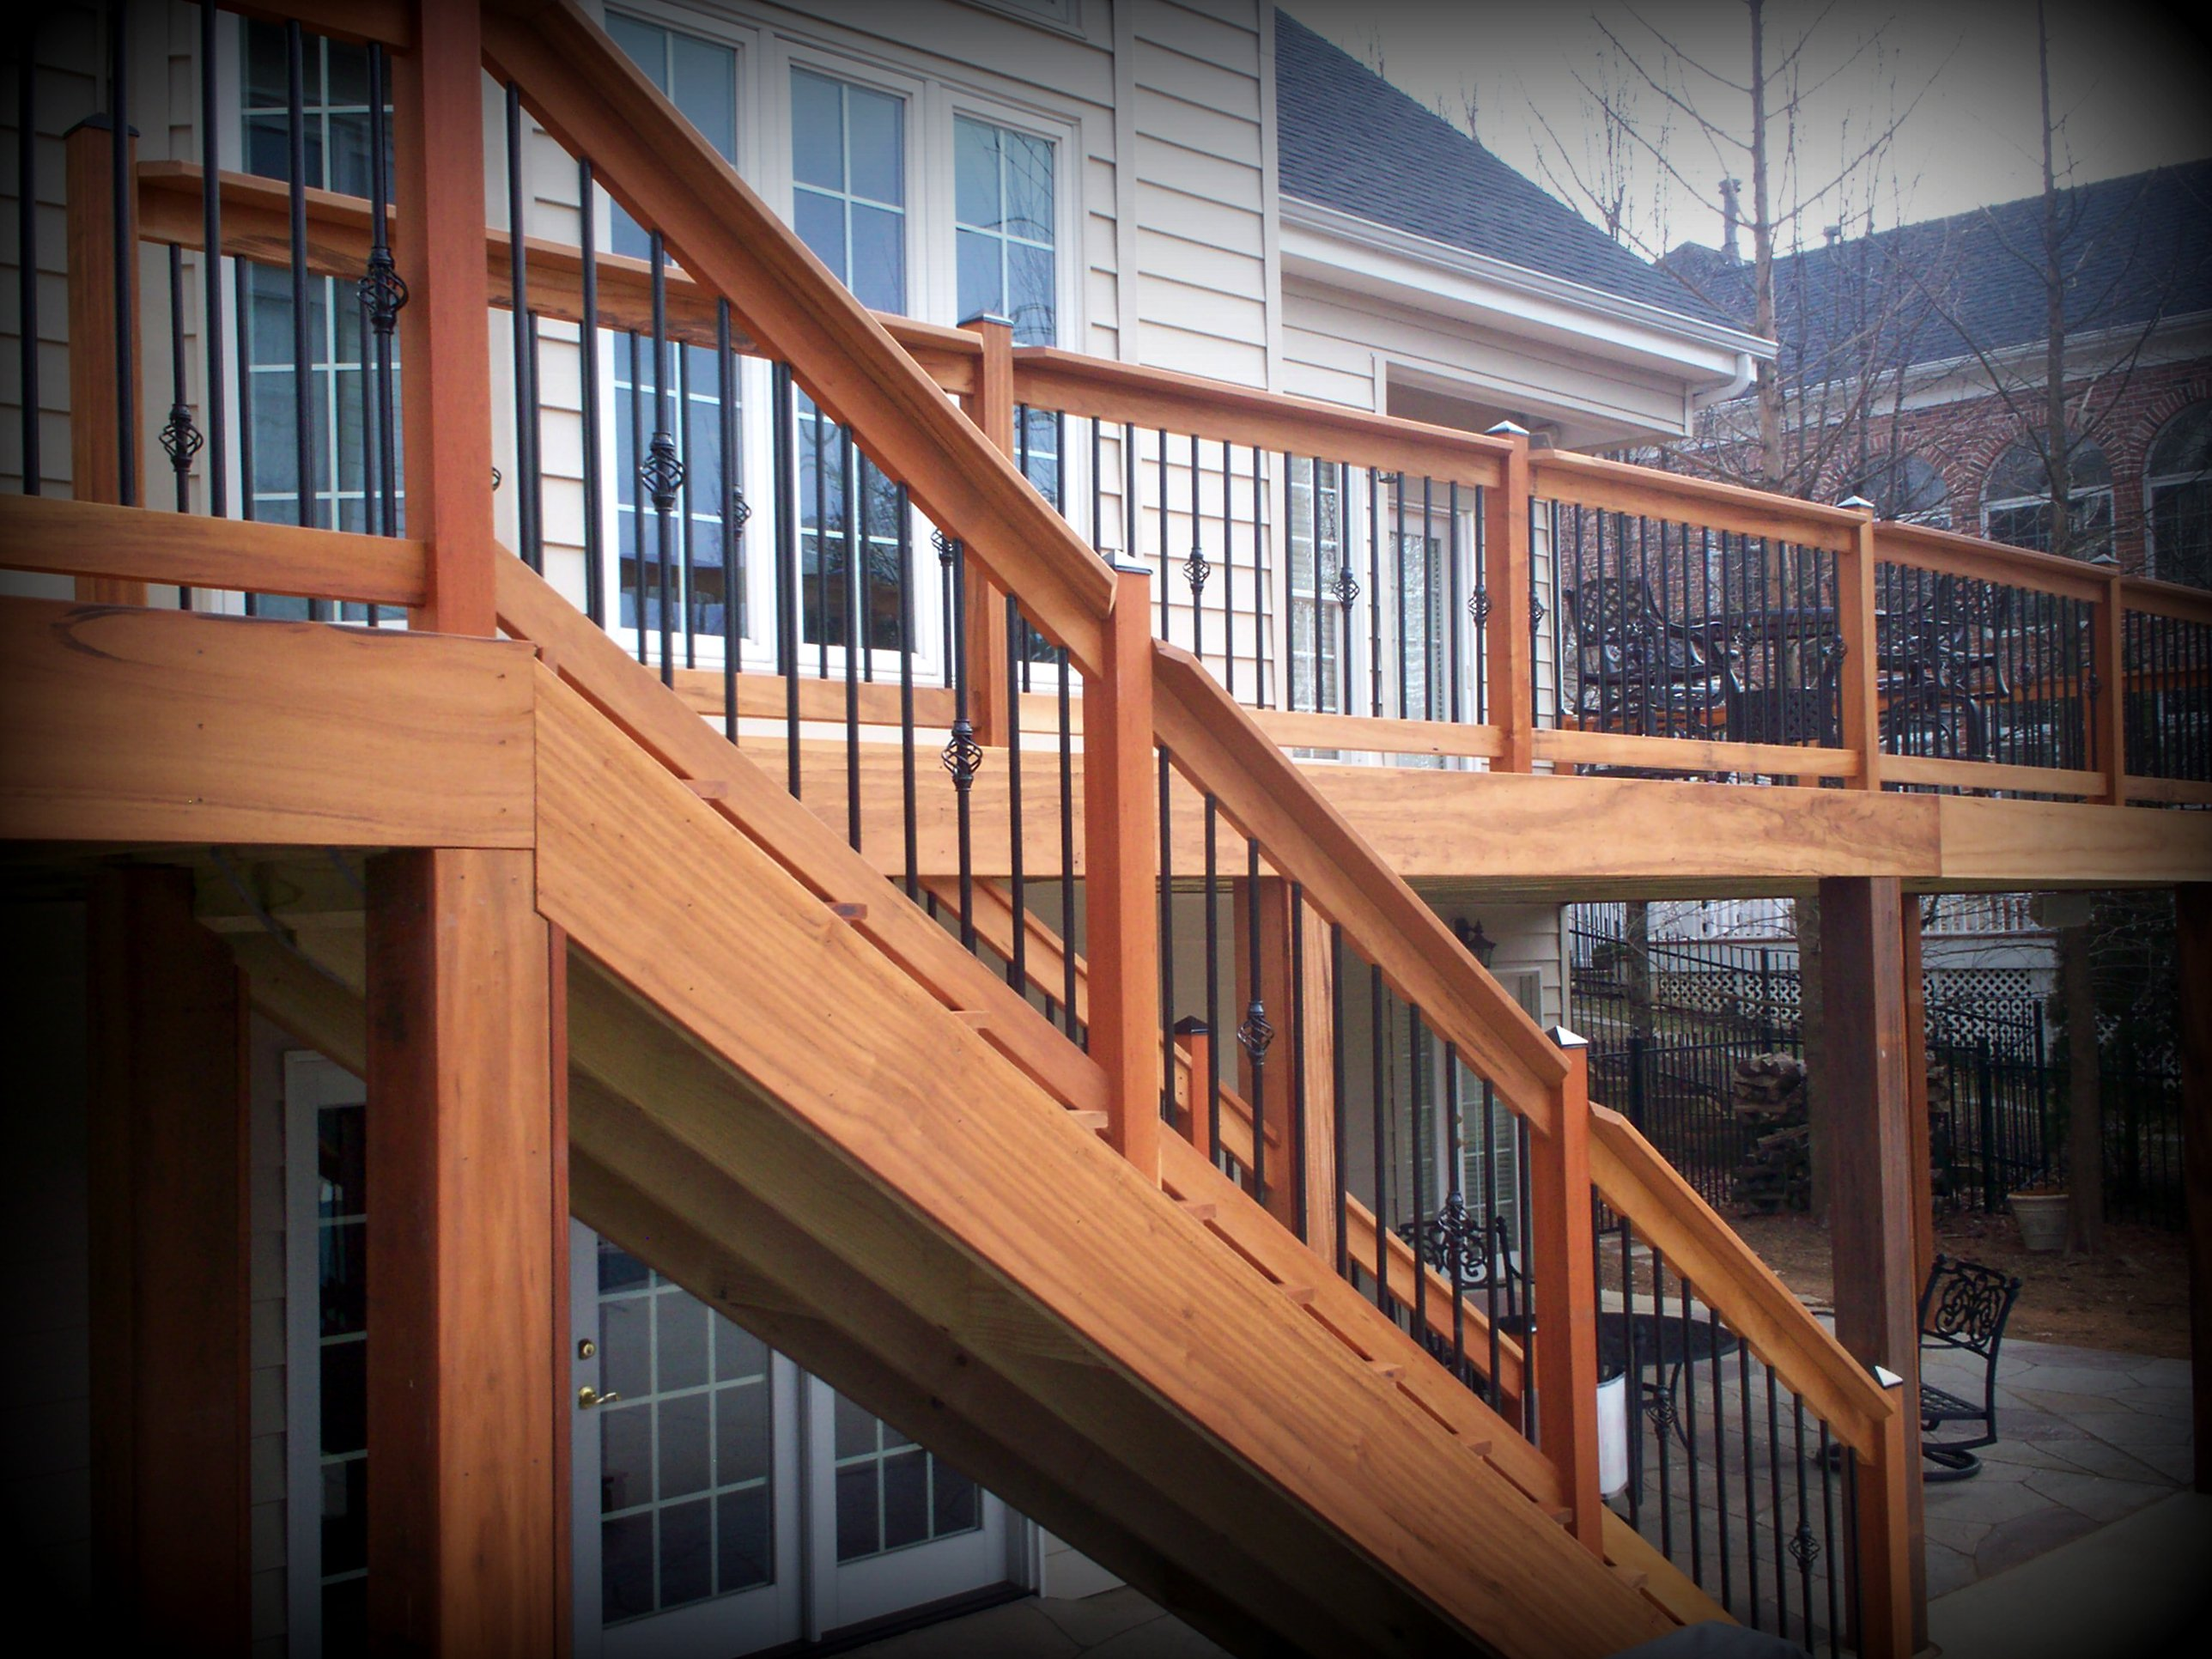 St Louis Deck Design For Your Home Lifestyle And Budget St Louis Decks Screened Porches Pergolas By Archadeck